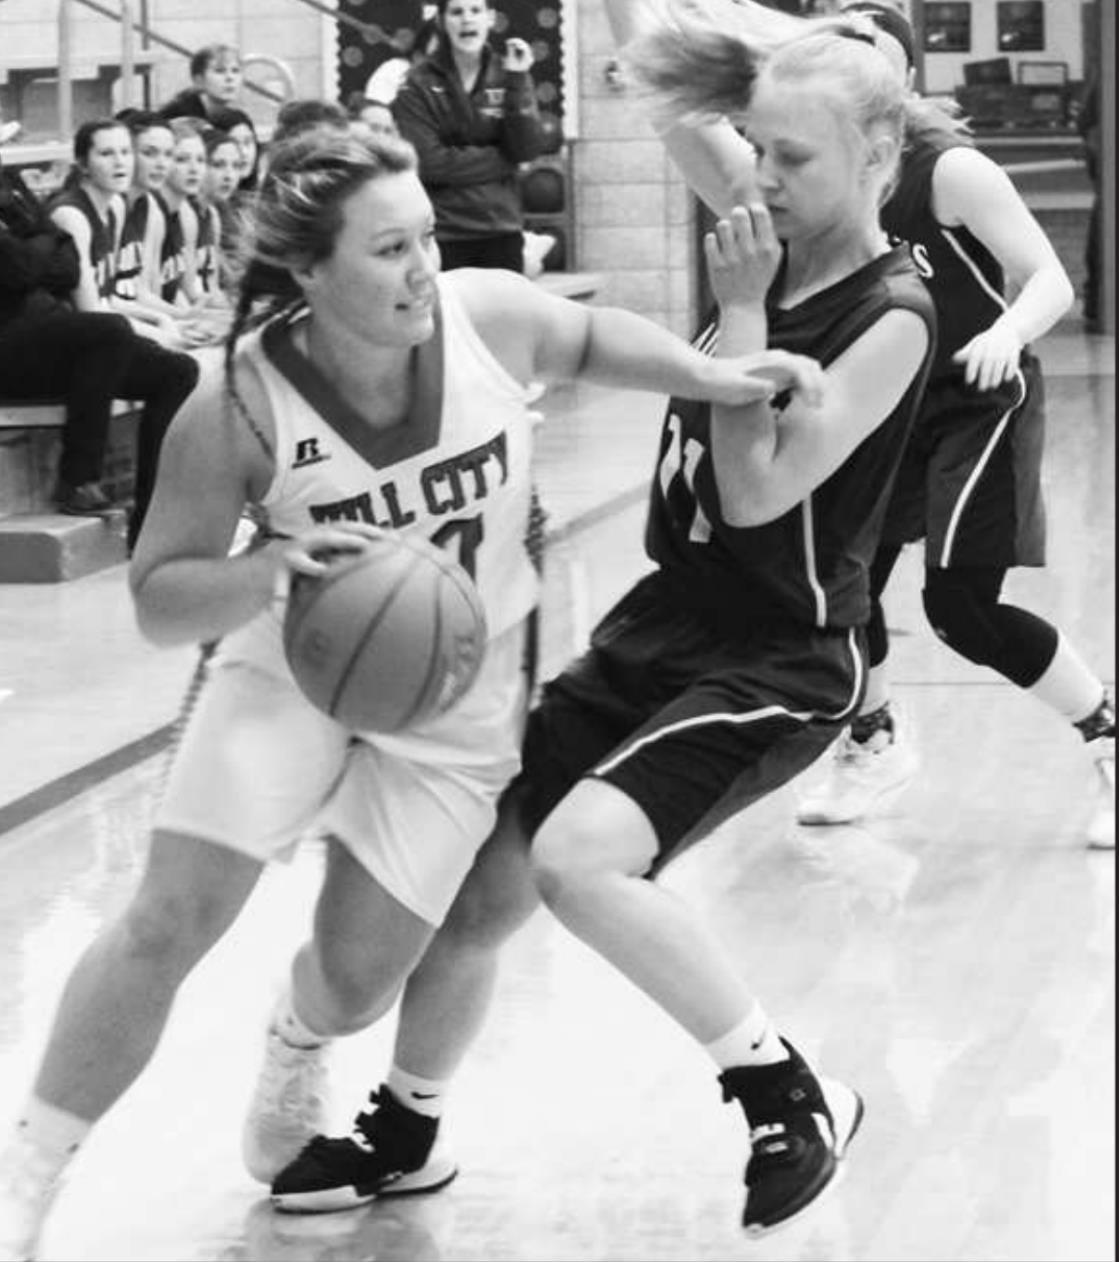 Emily Eilert plays tough defense for the Lady Jays.Jeri Dubbert courtesy photo